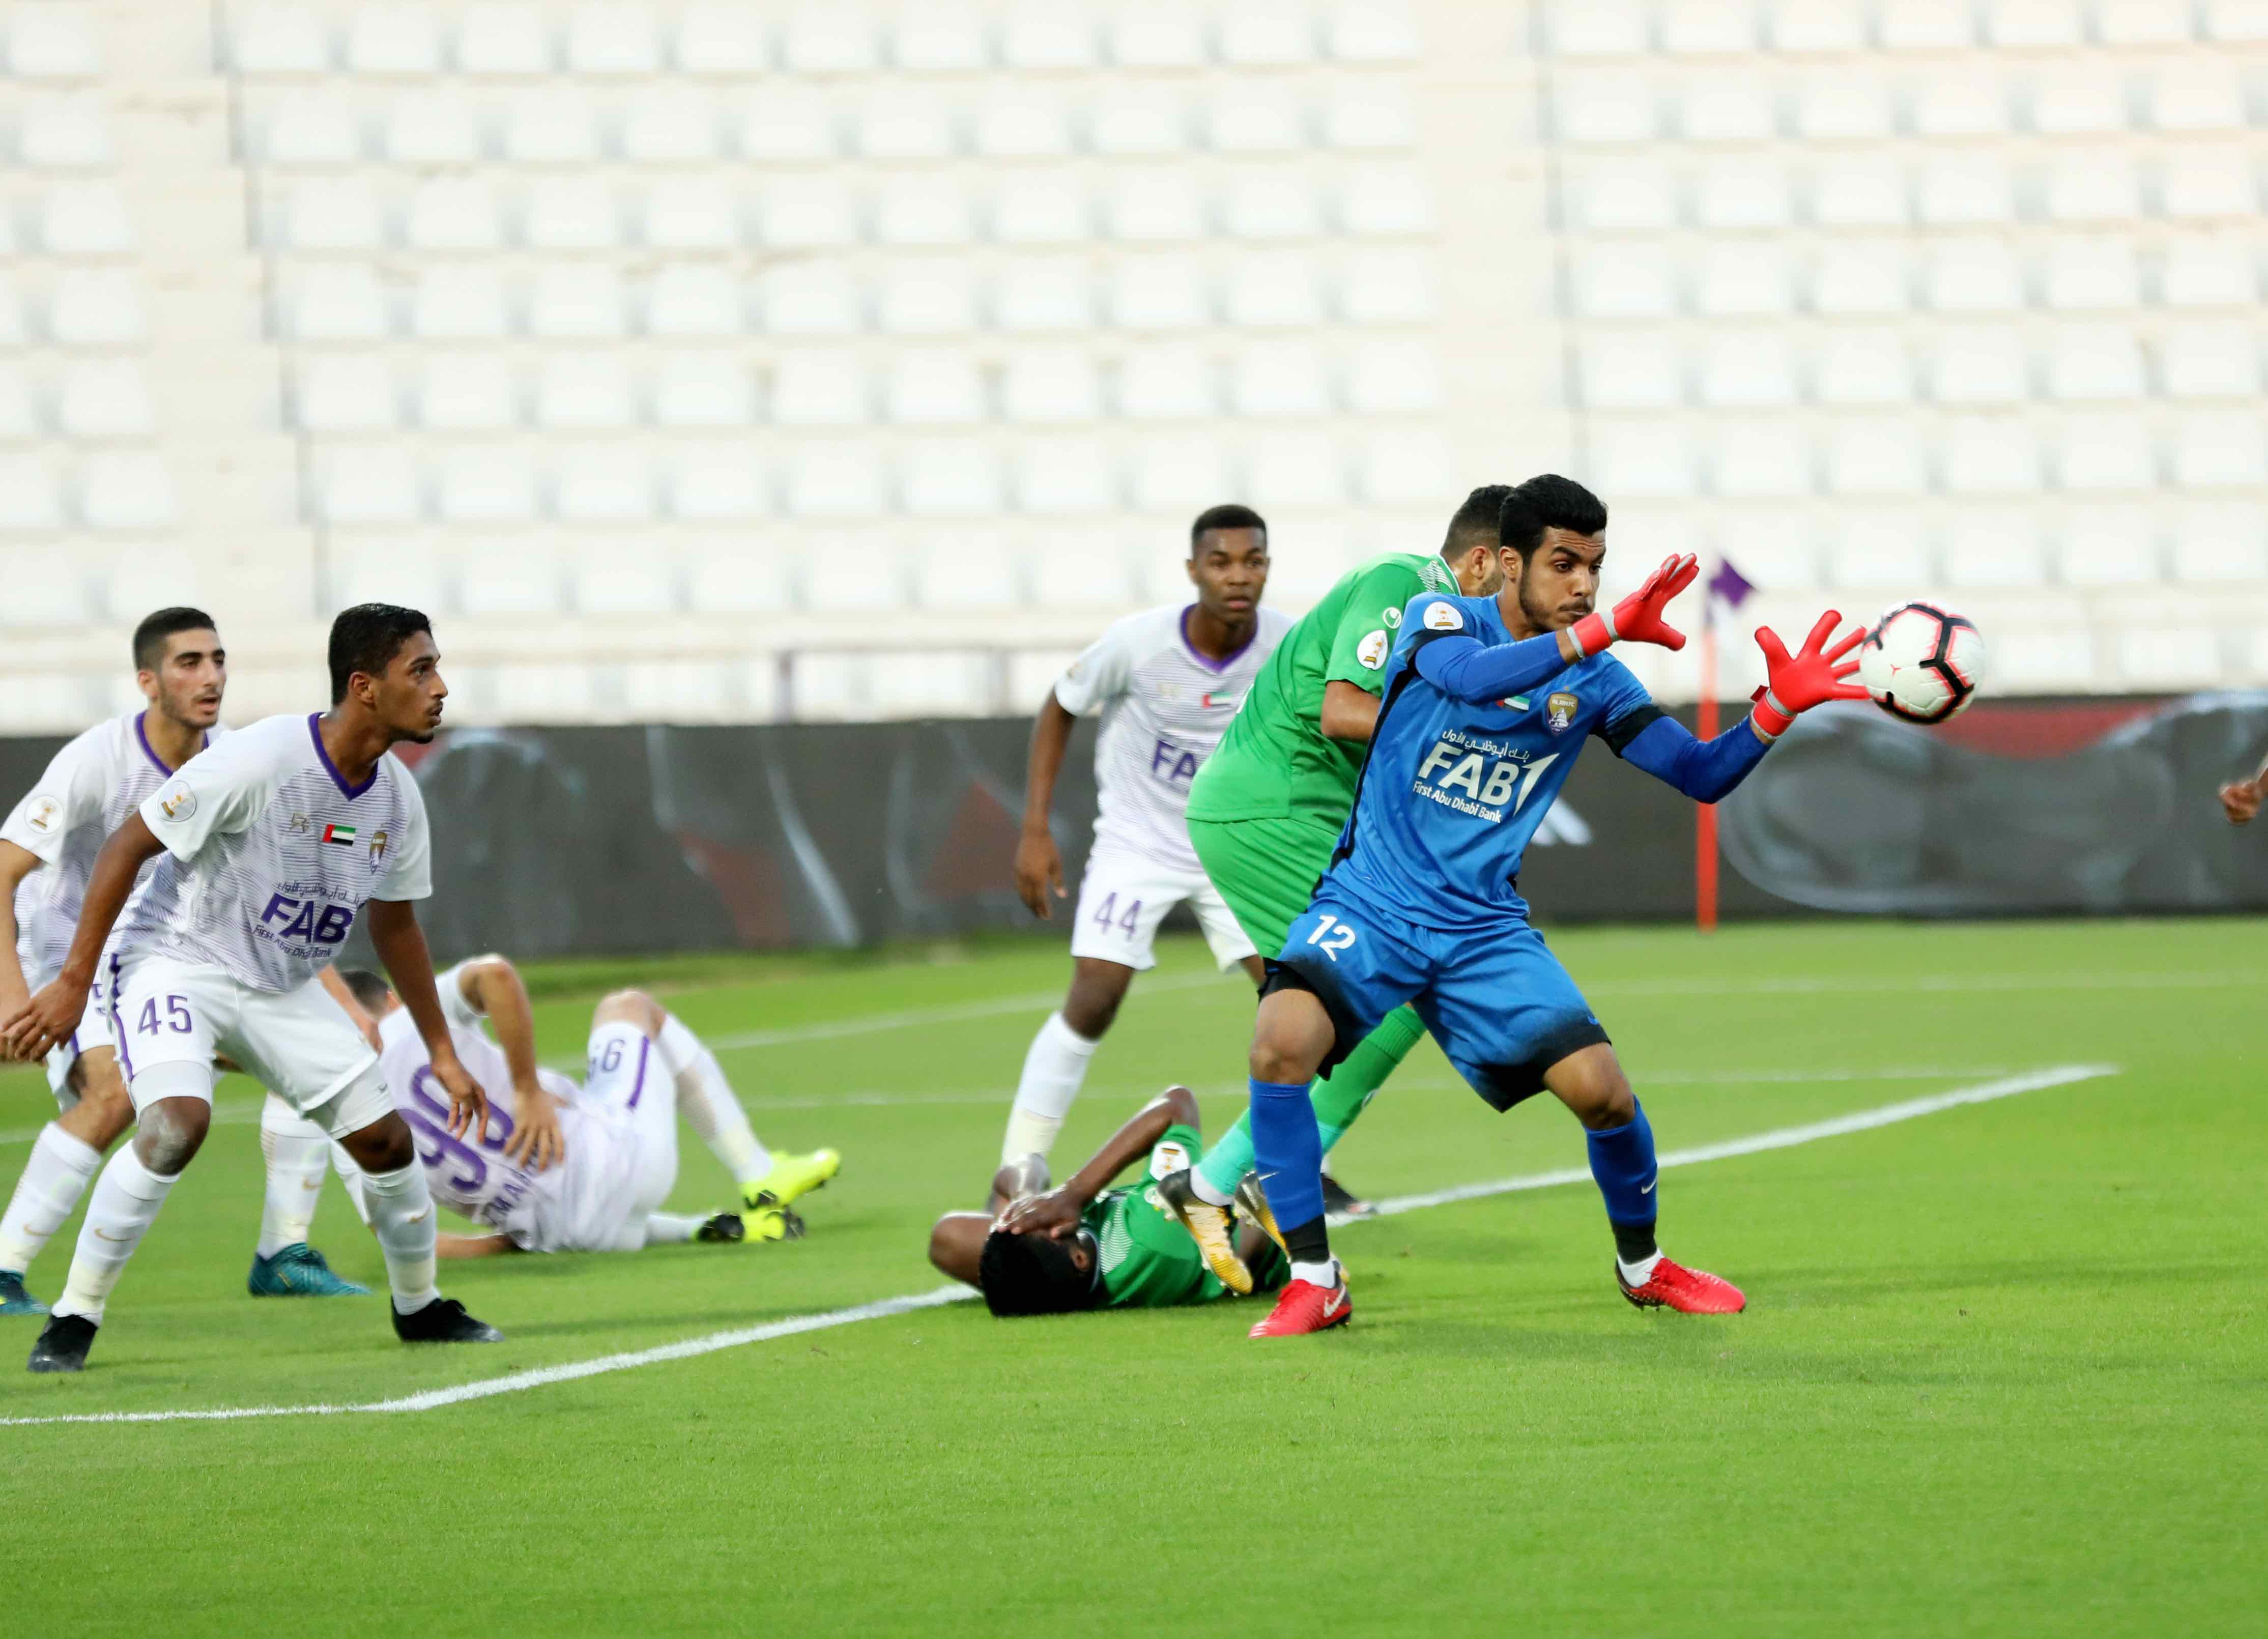 Al Ain, Emirates play out goalless draw in Arabian Gulf Cup